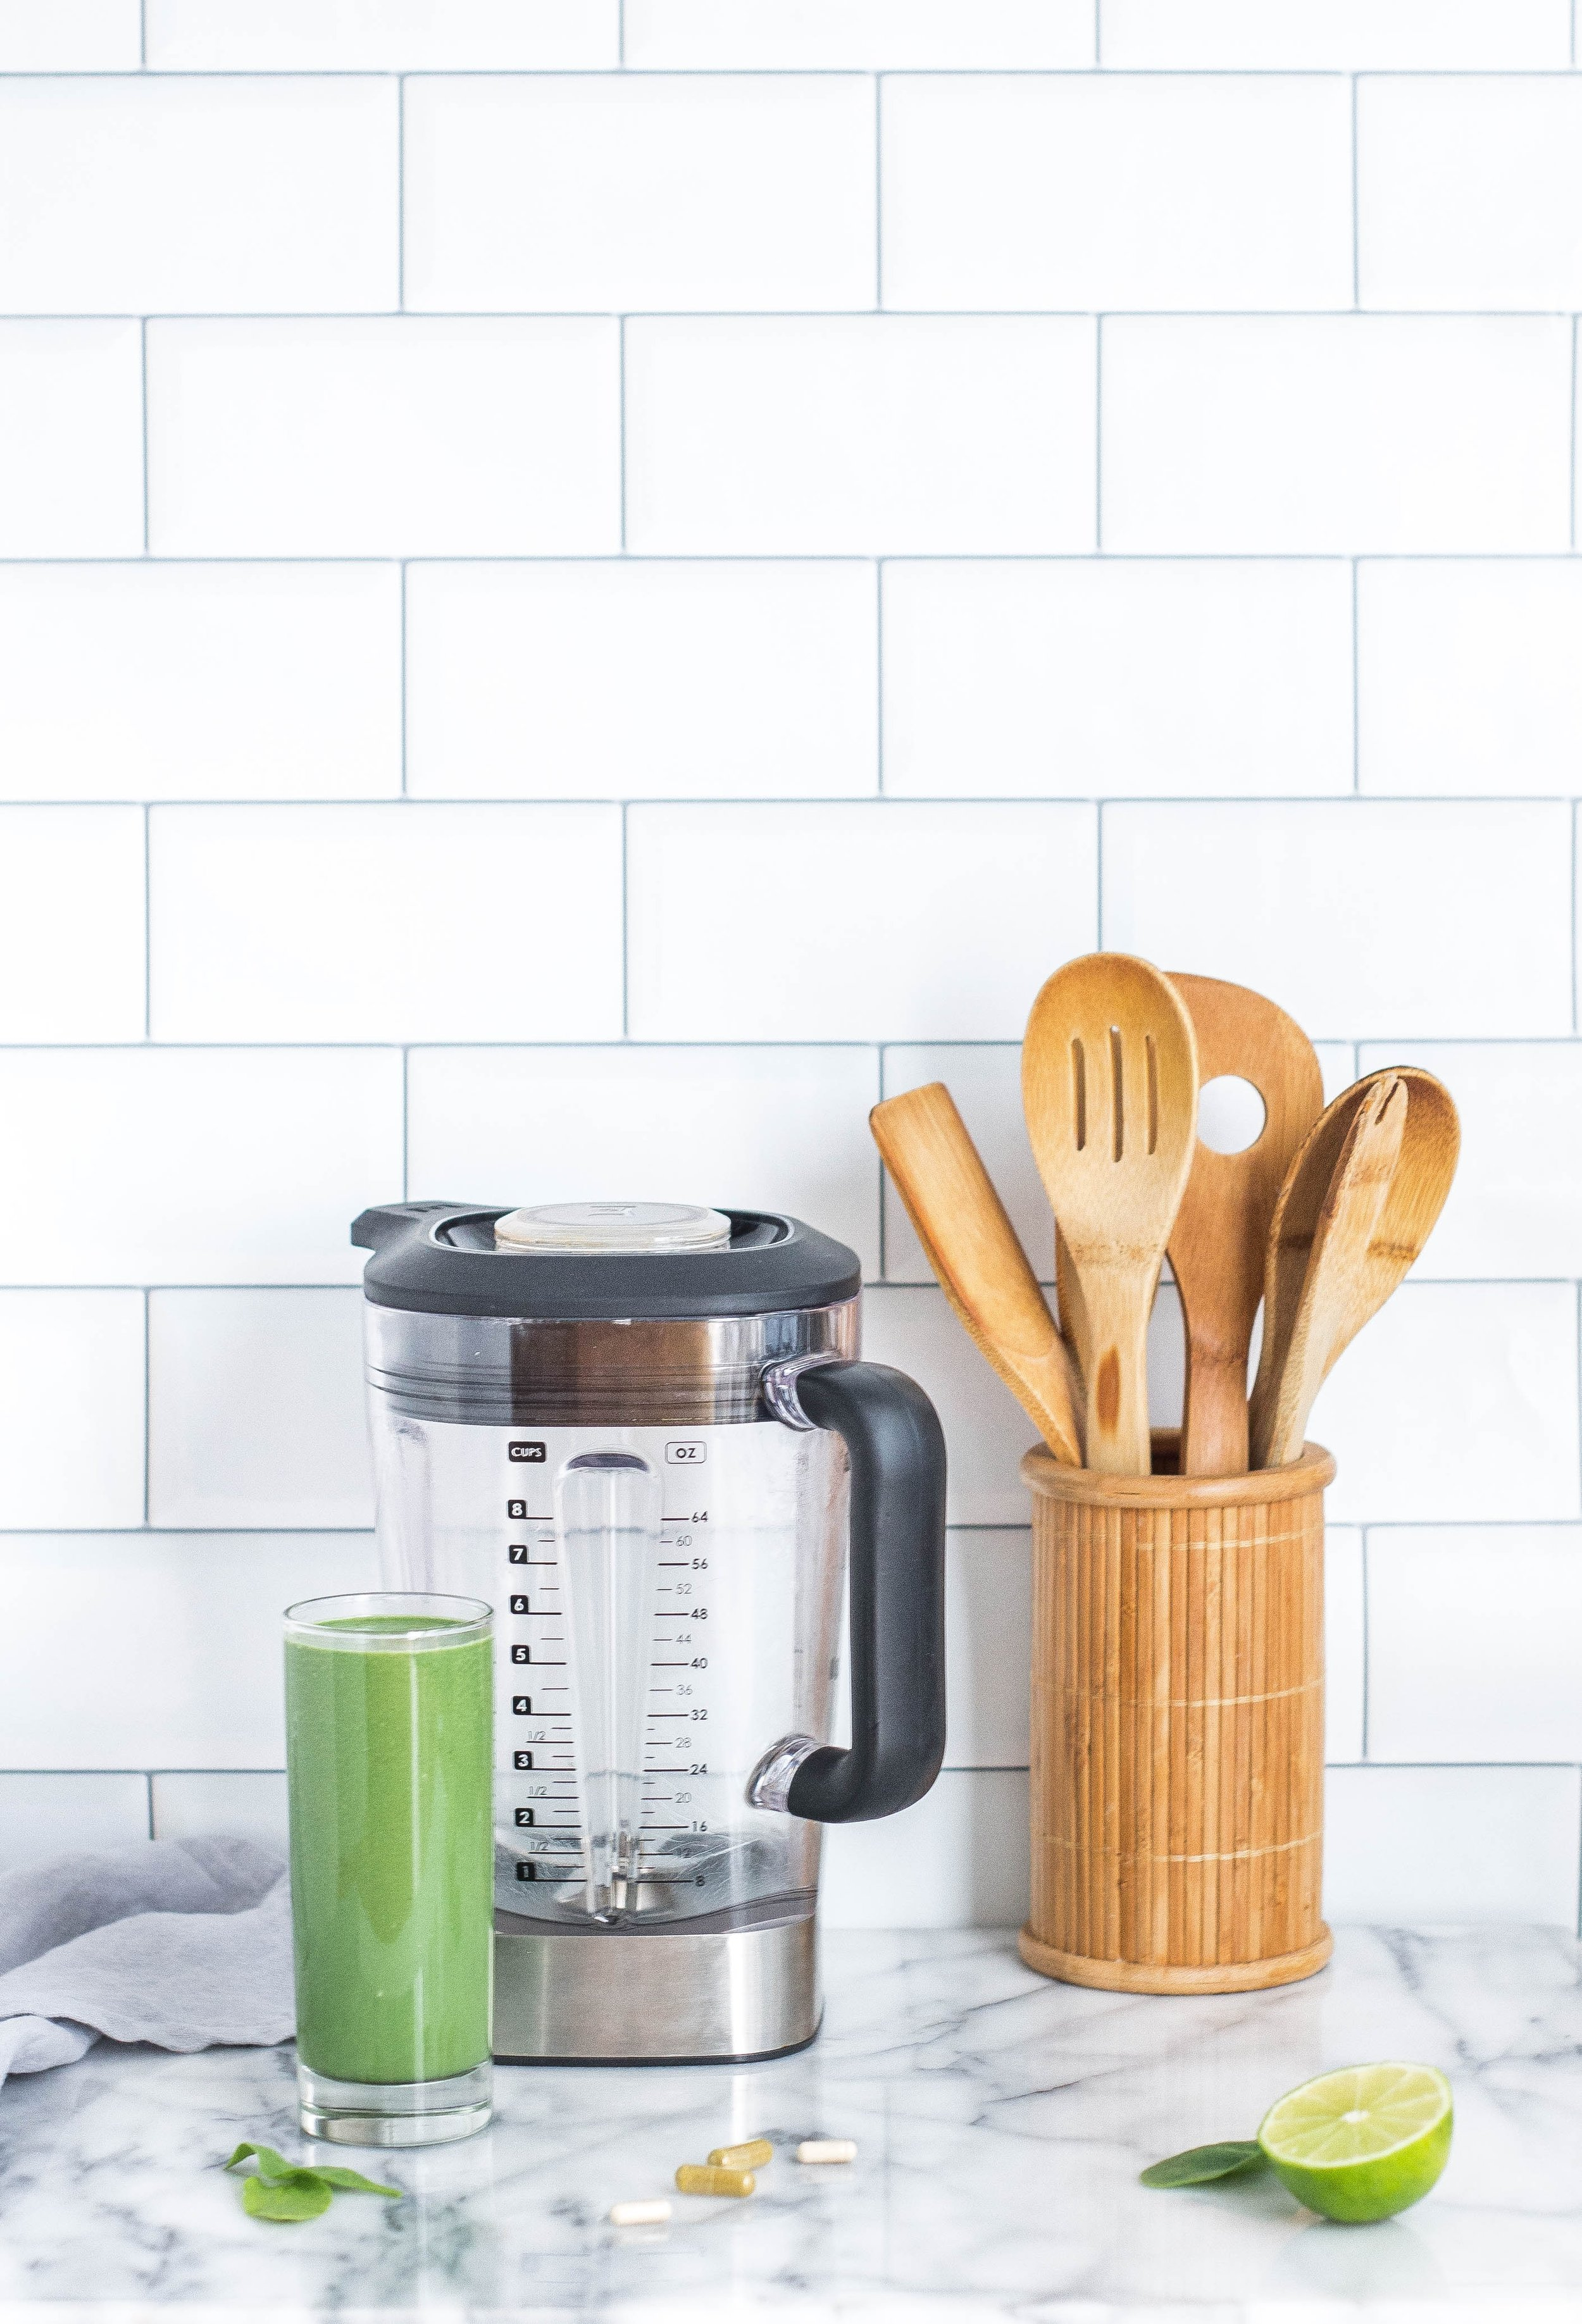 green smoothie and blender